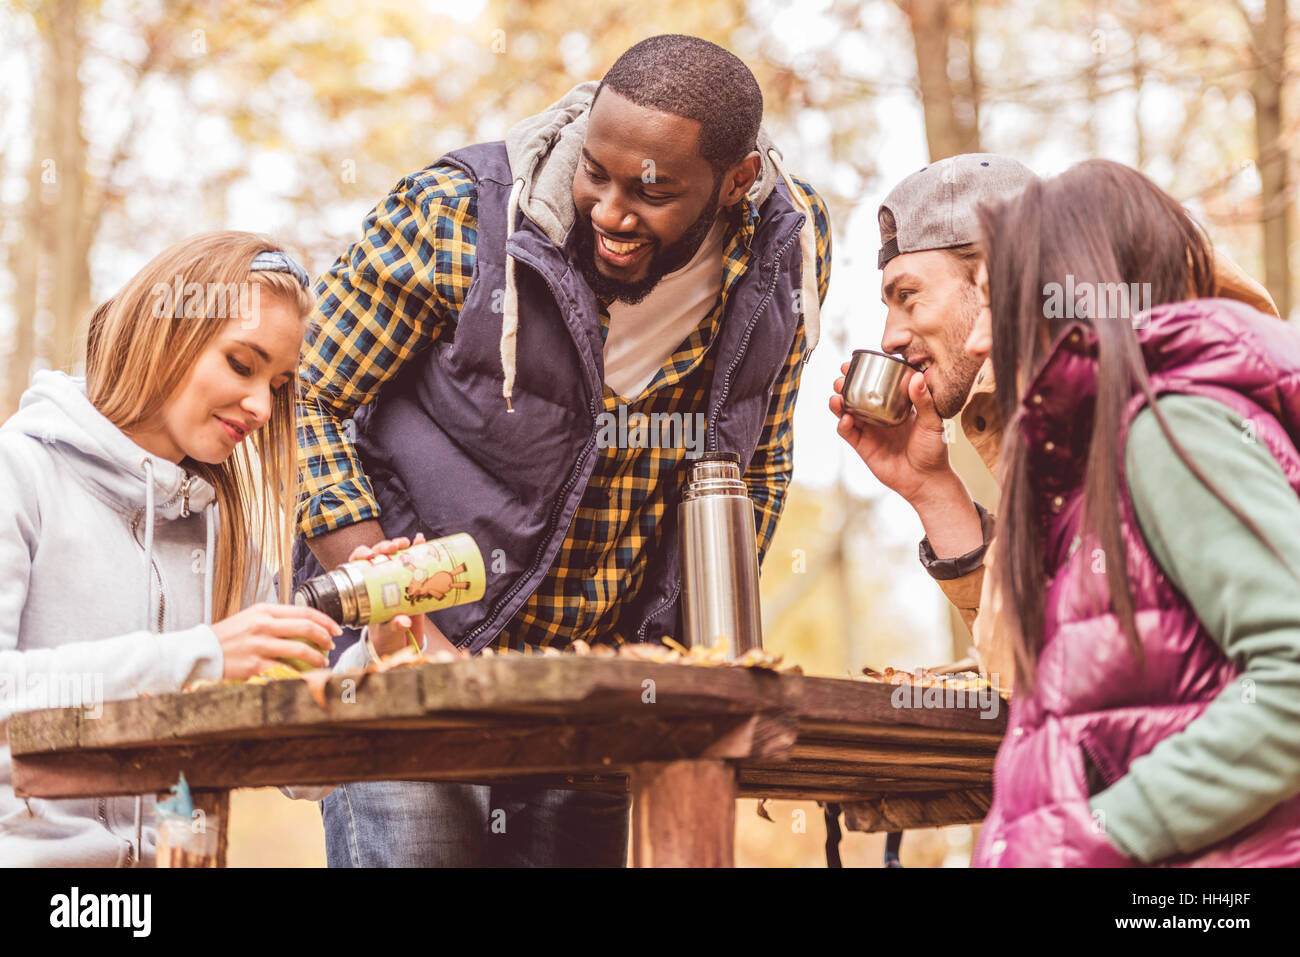 Group of smiling friends sitting at wooden table and pouring hot drink in autumn forest - Stock Image